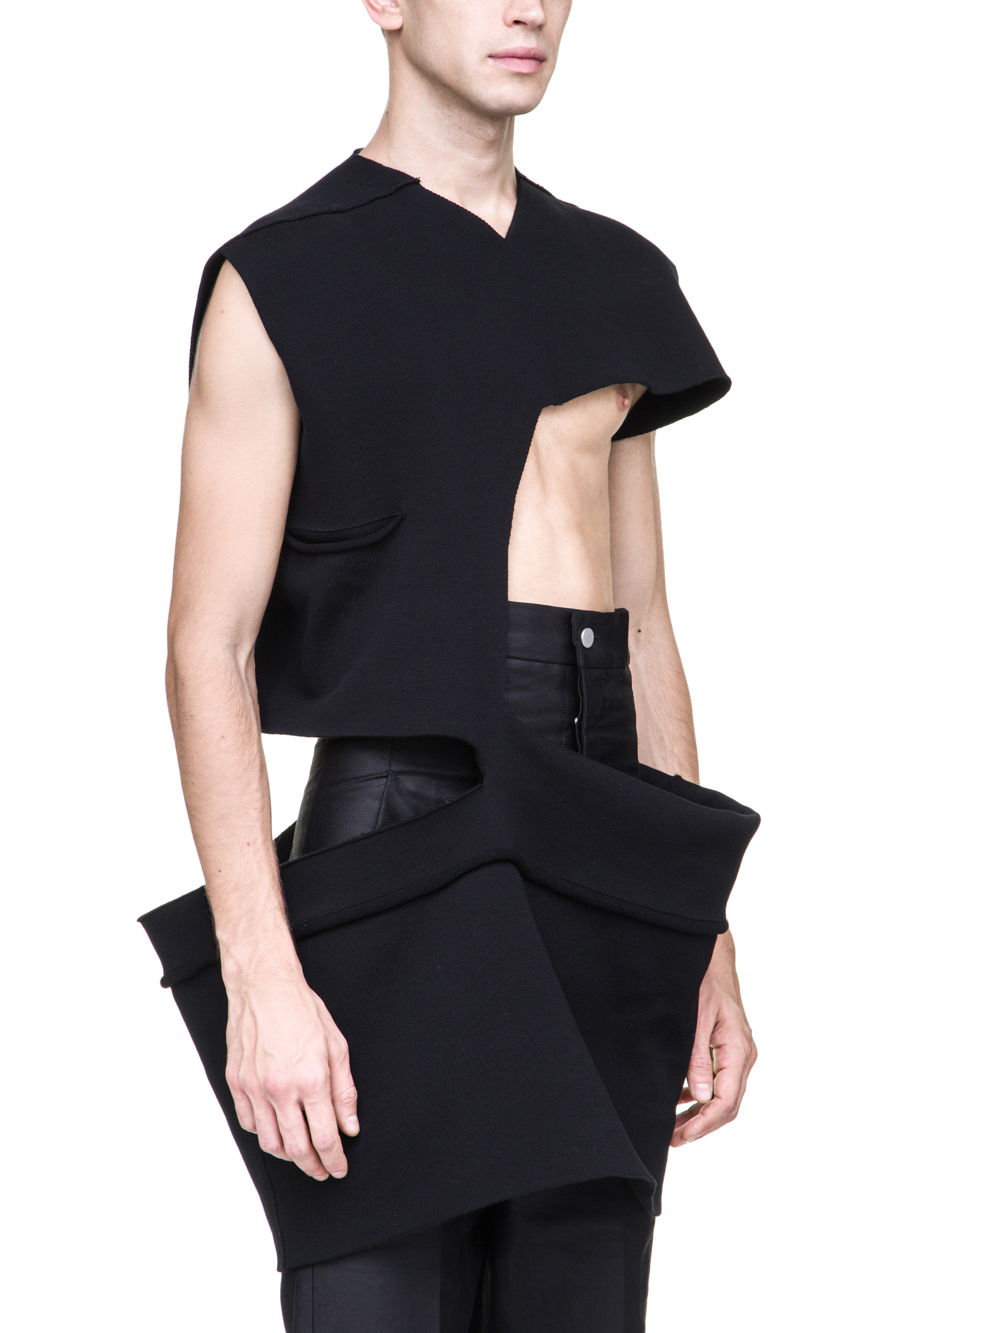 RICK OWENS OFF-THE-RUNWAY MINISHRED TOP IN BLACK SCULPTURE KNIT